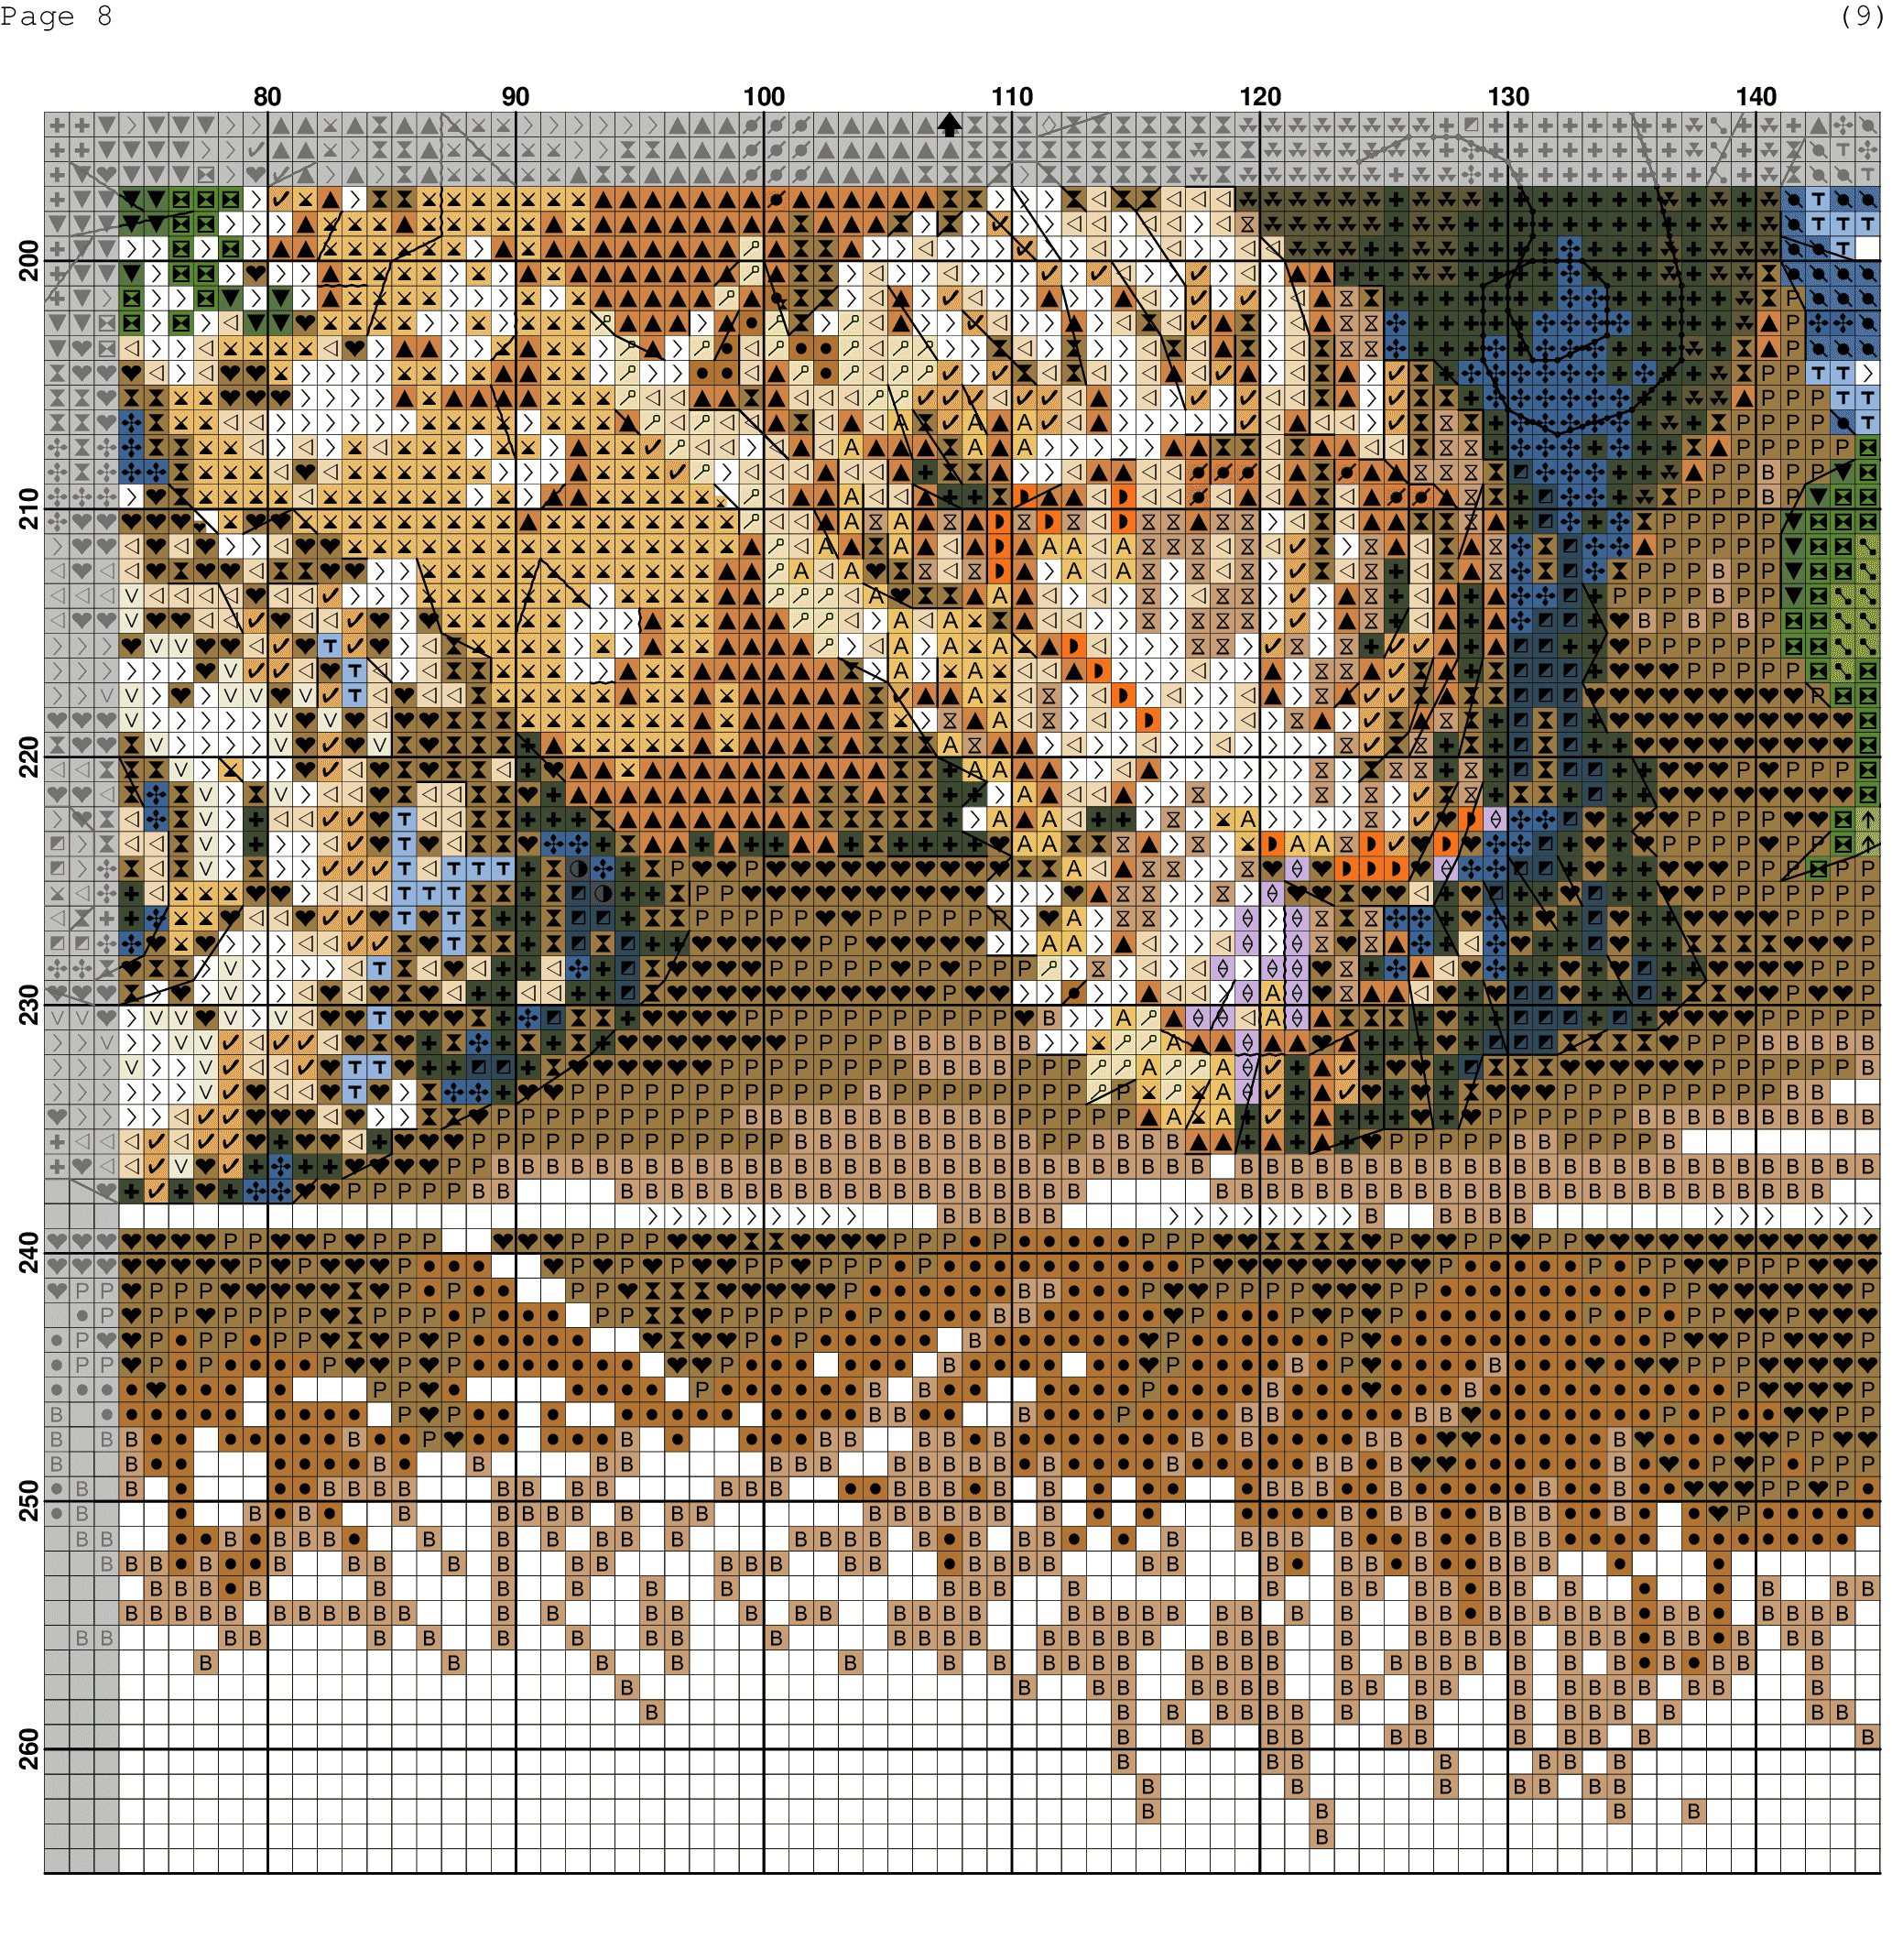 wildflowers-cross-stitch-patterns-(9)